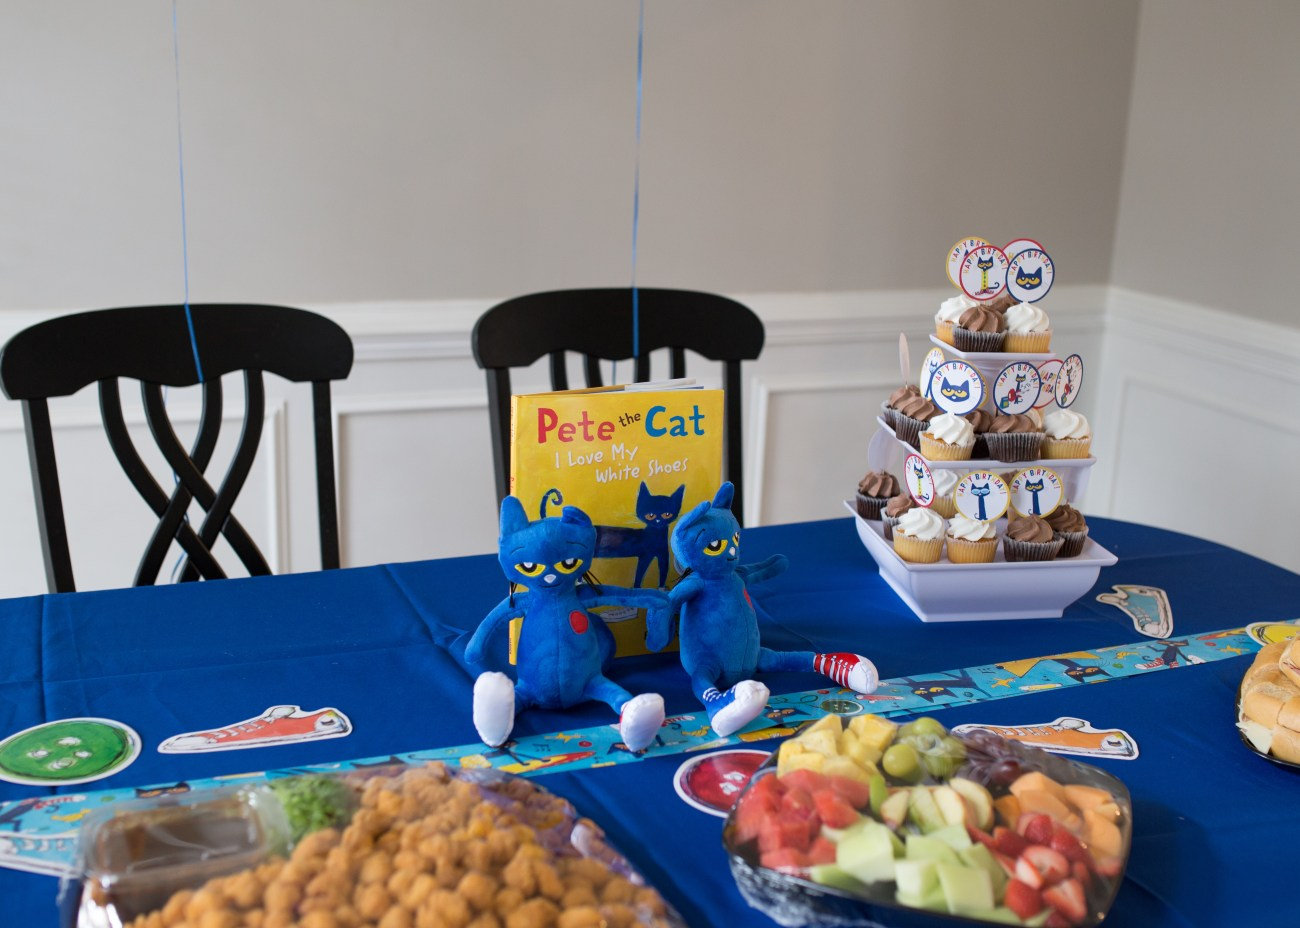 Pete the cat diy decorations birthday party food table